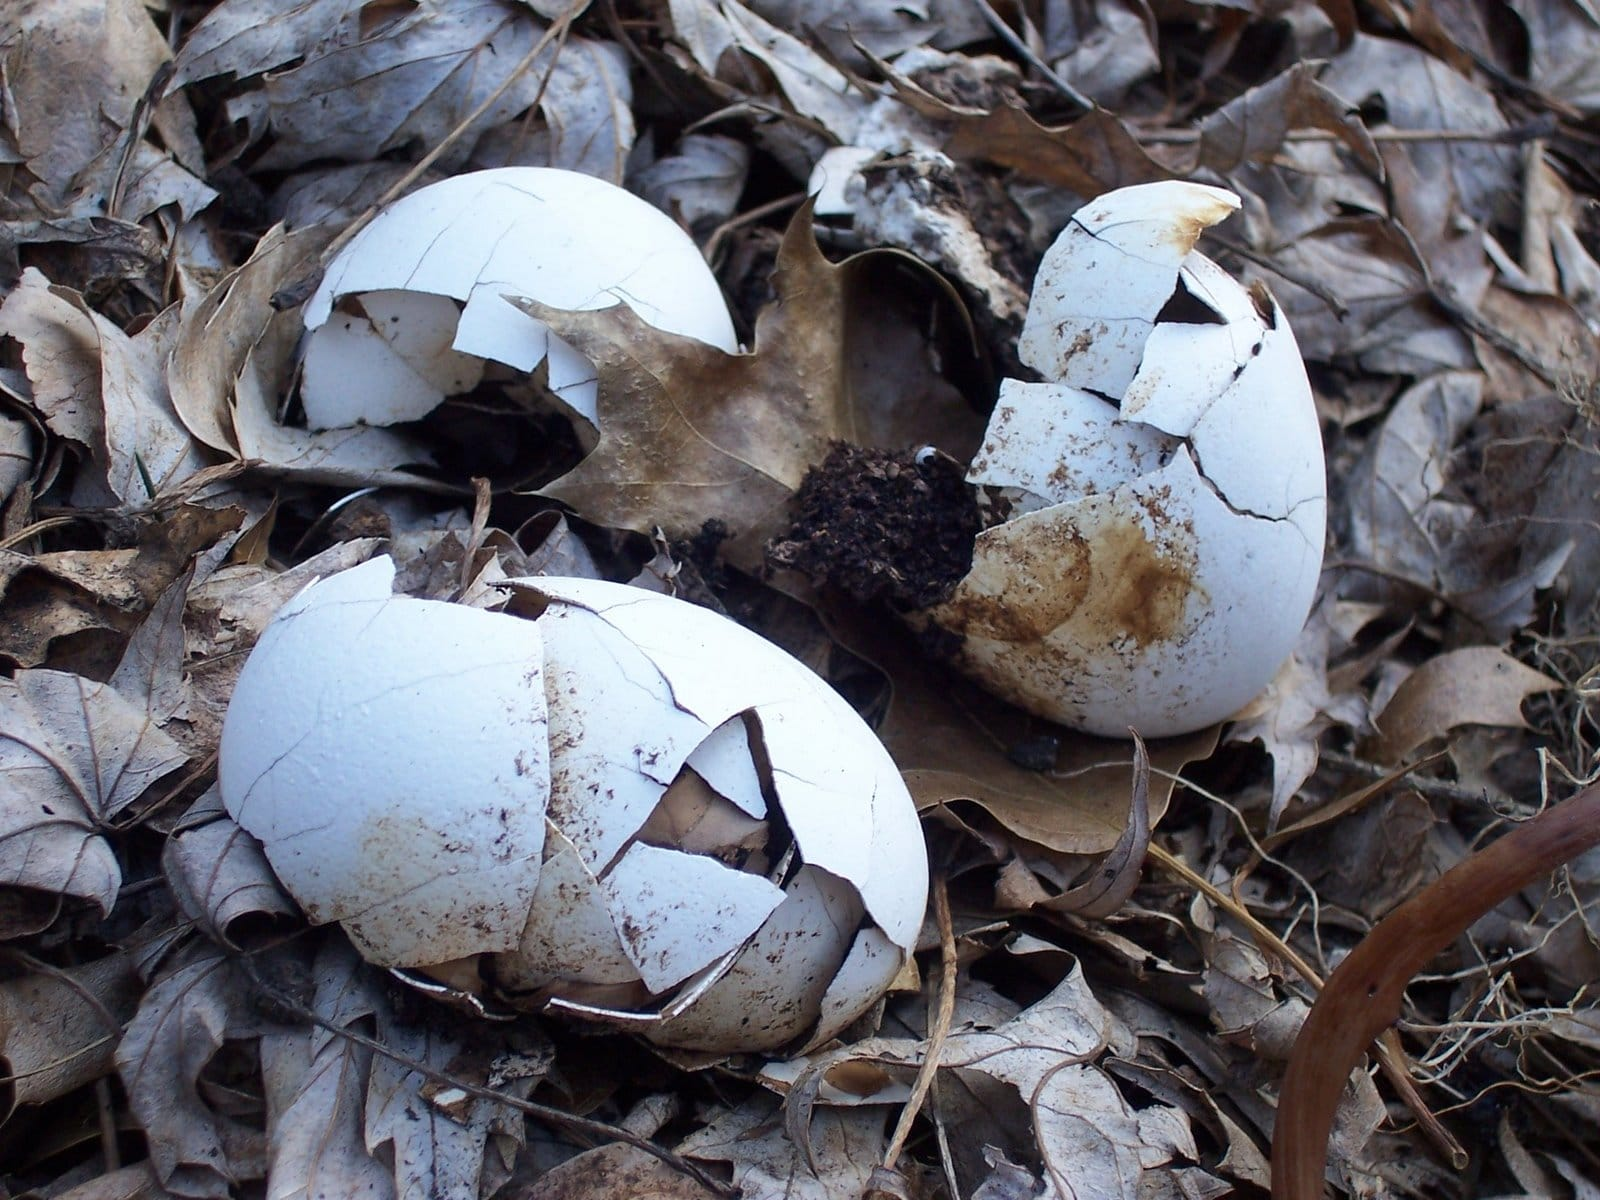 Composting Egg Shells